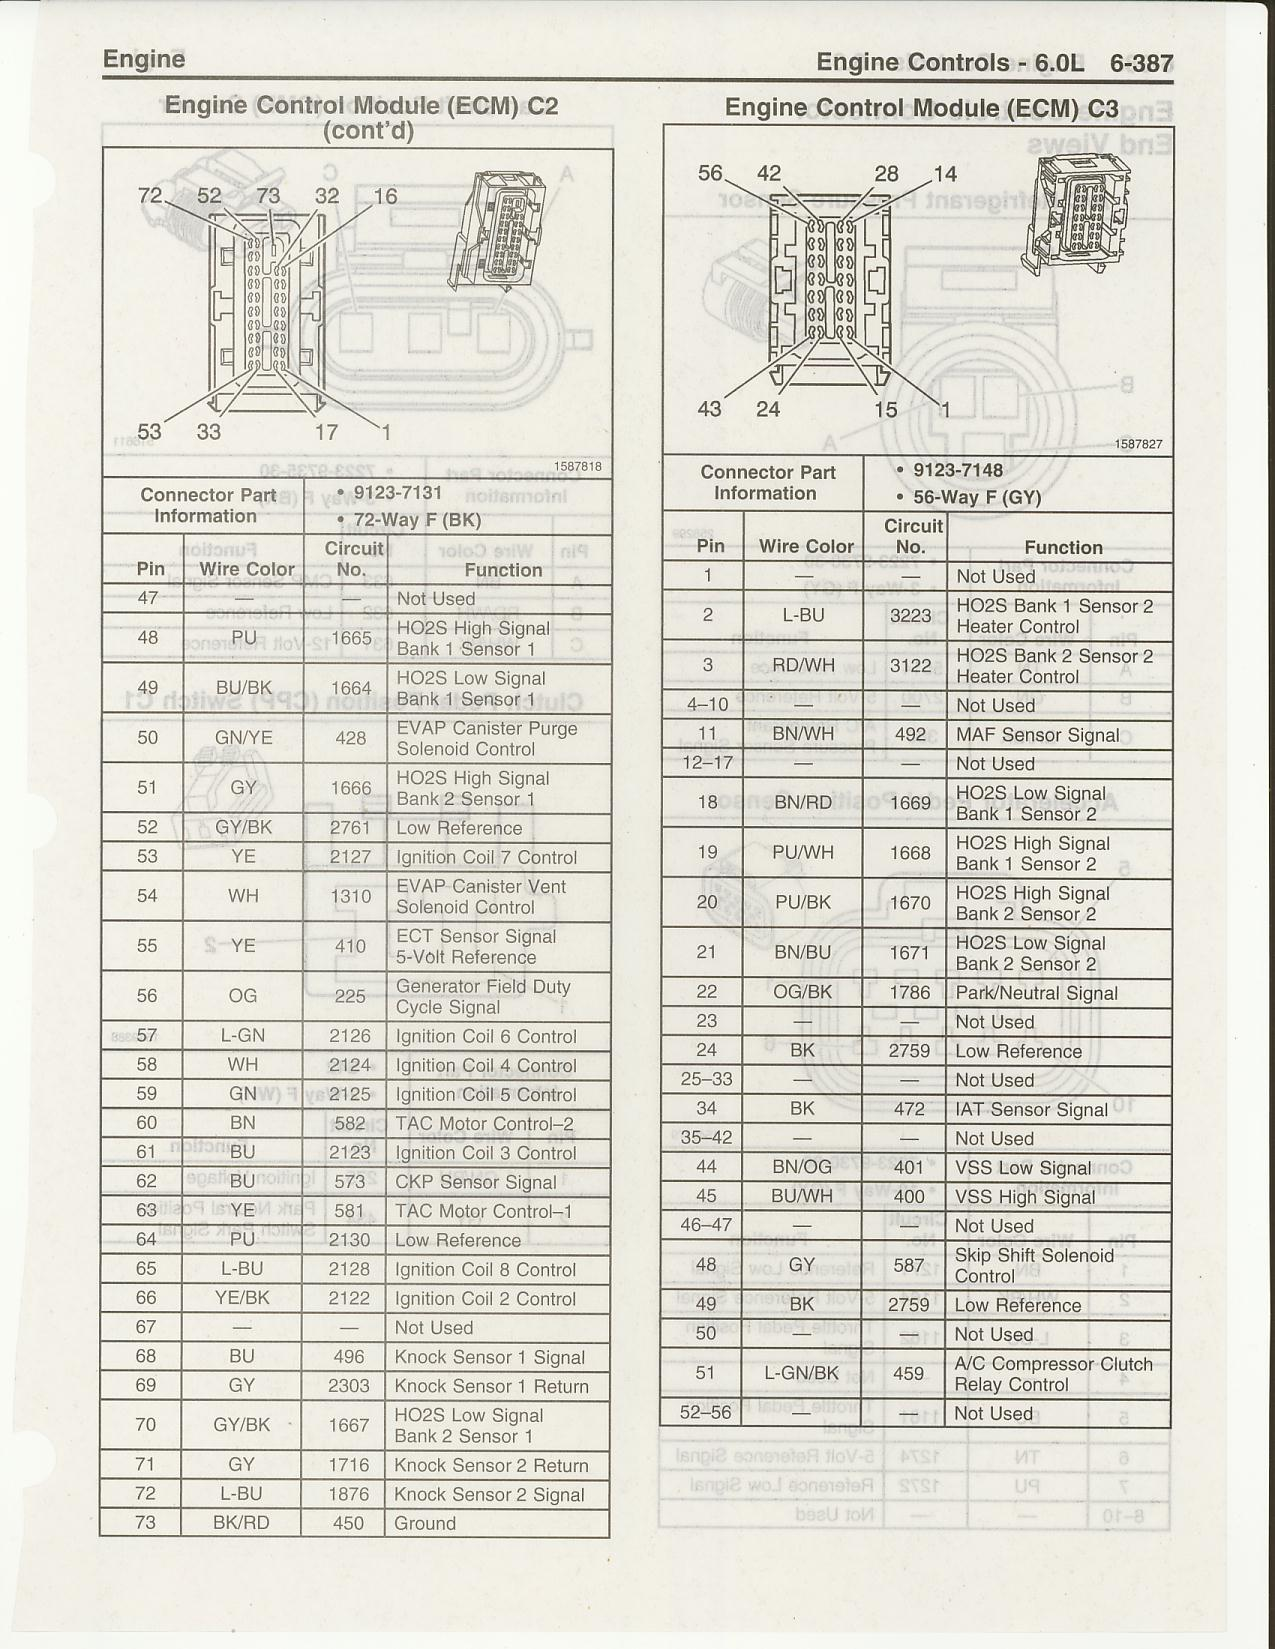 enginecontrols09 e67 wiring diagram smart car diagrams \u2022 wiring diagrams j squared co 6l80e trans modules wiring diagram at gsmx.co